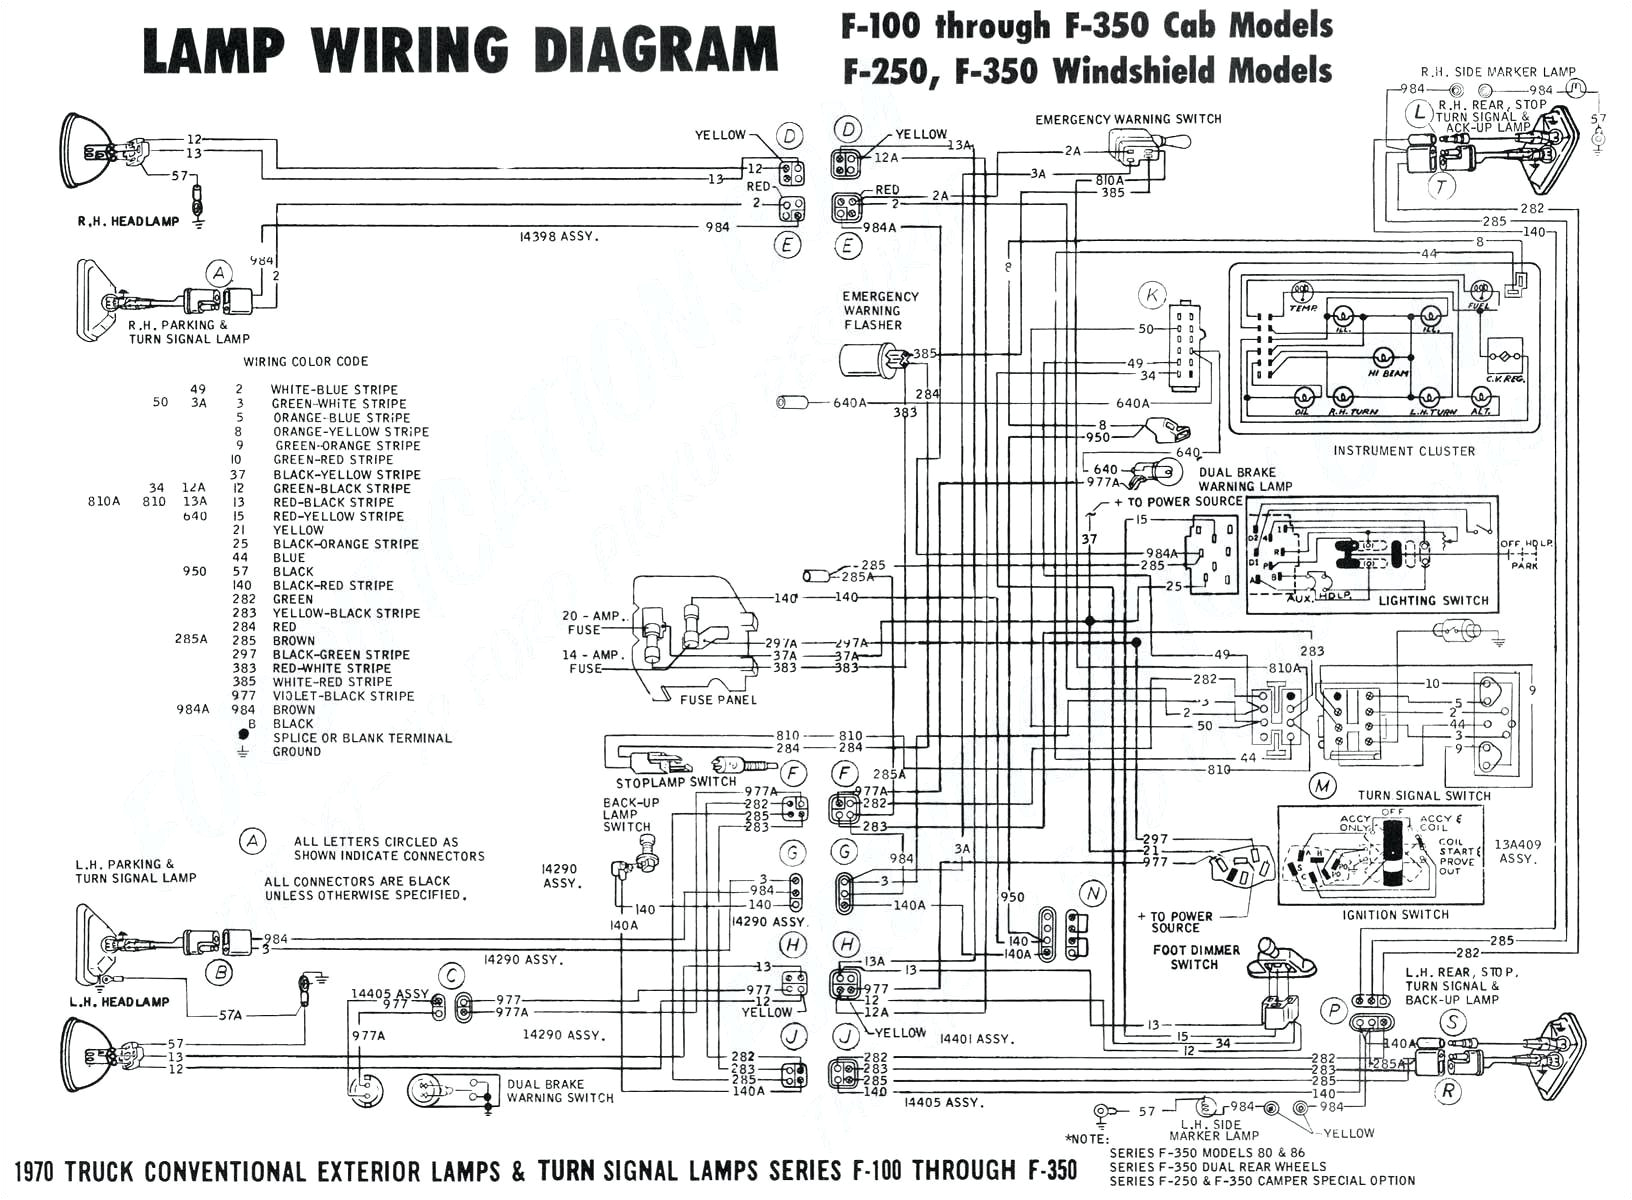 tail light wiring diagram ford f150 wiring diagram for automotive lights new stop turn tail